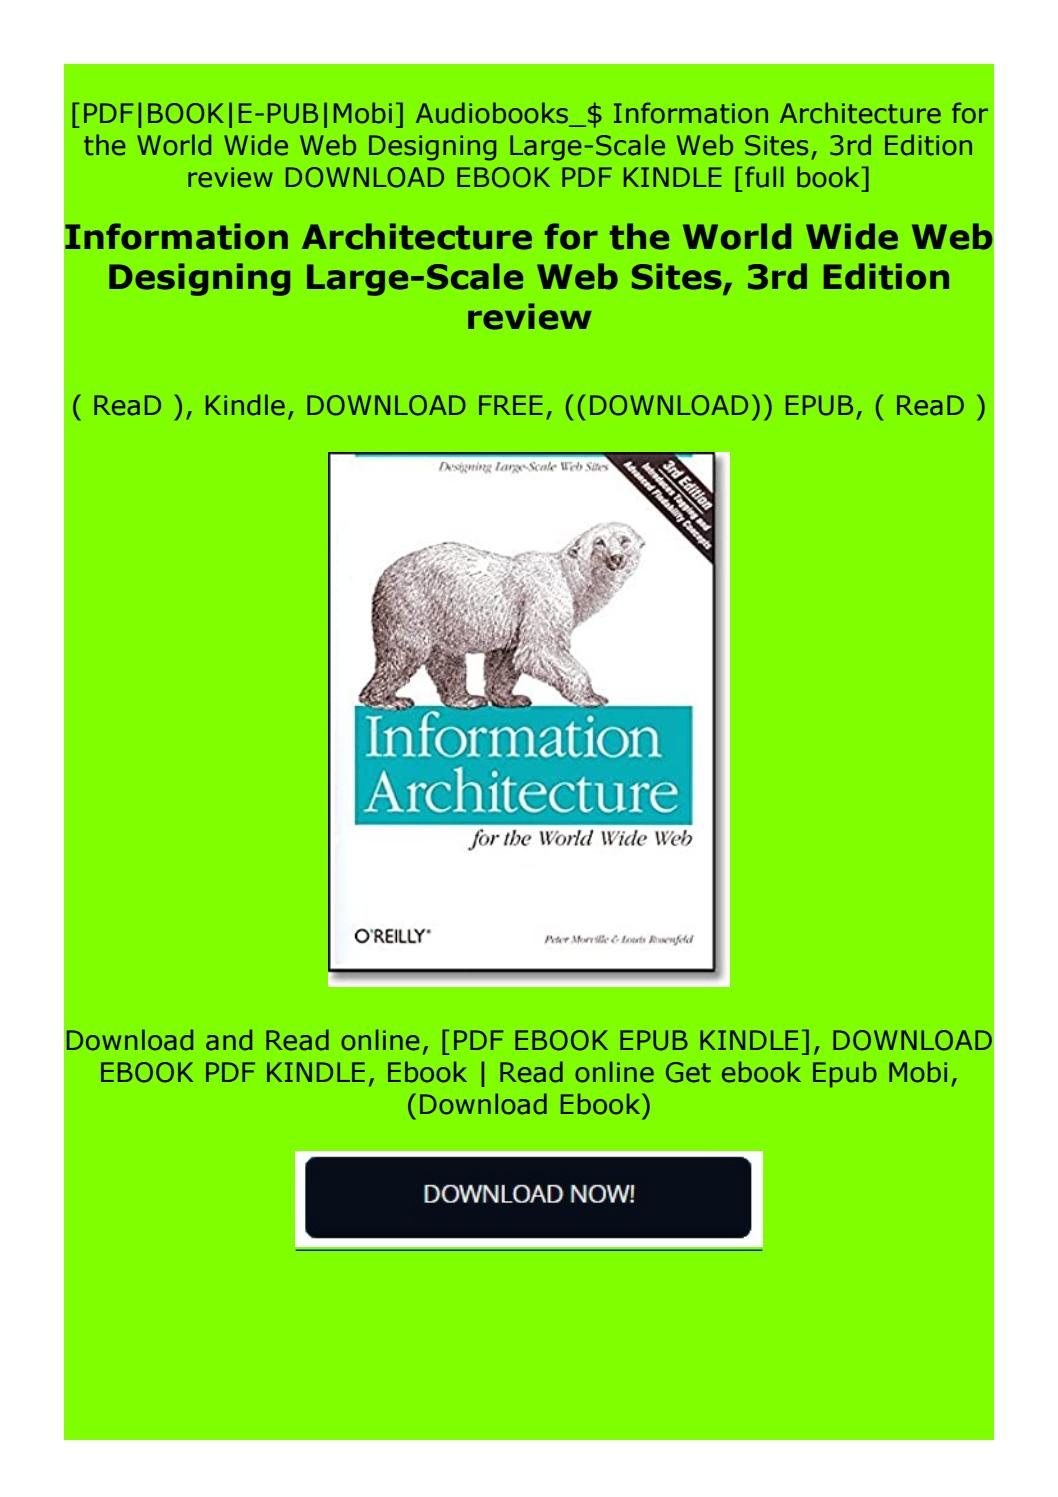 Full Pages Information Architecture For The World Wide Web Designing Large Scale Web Sites By Qstdxtfdzrgzc Issuu